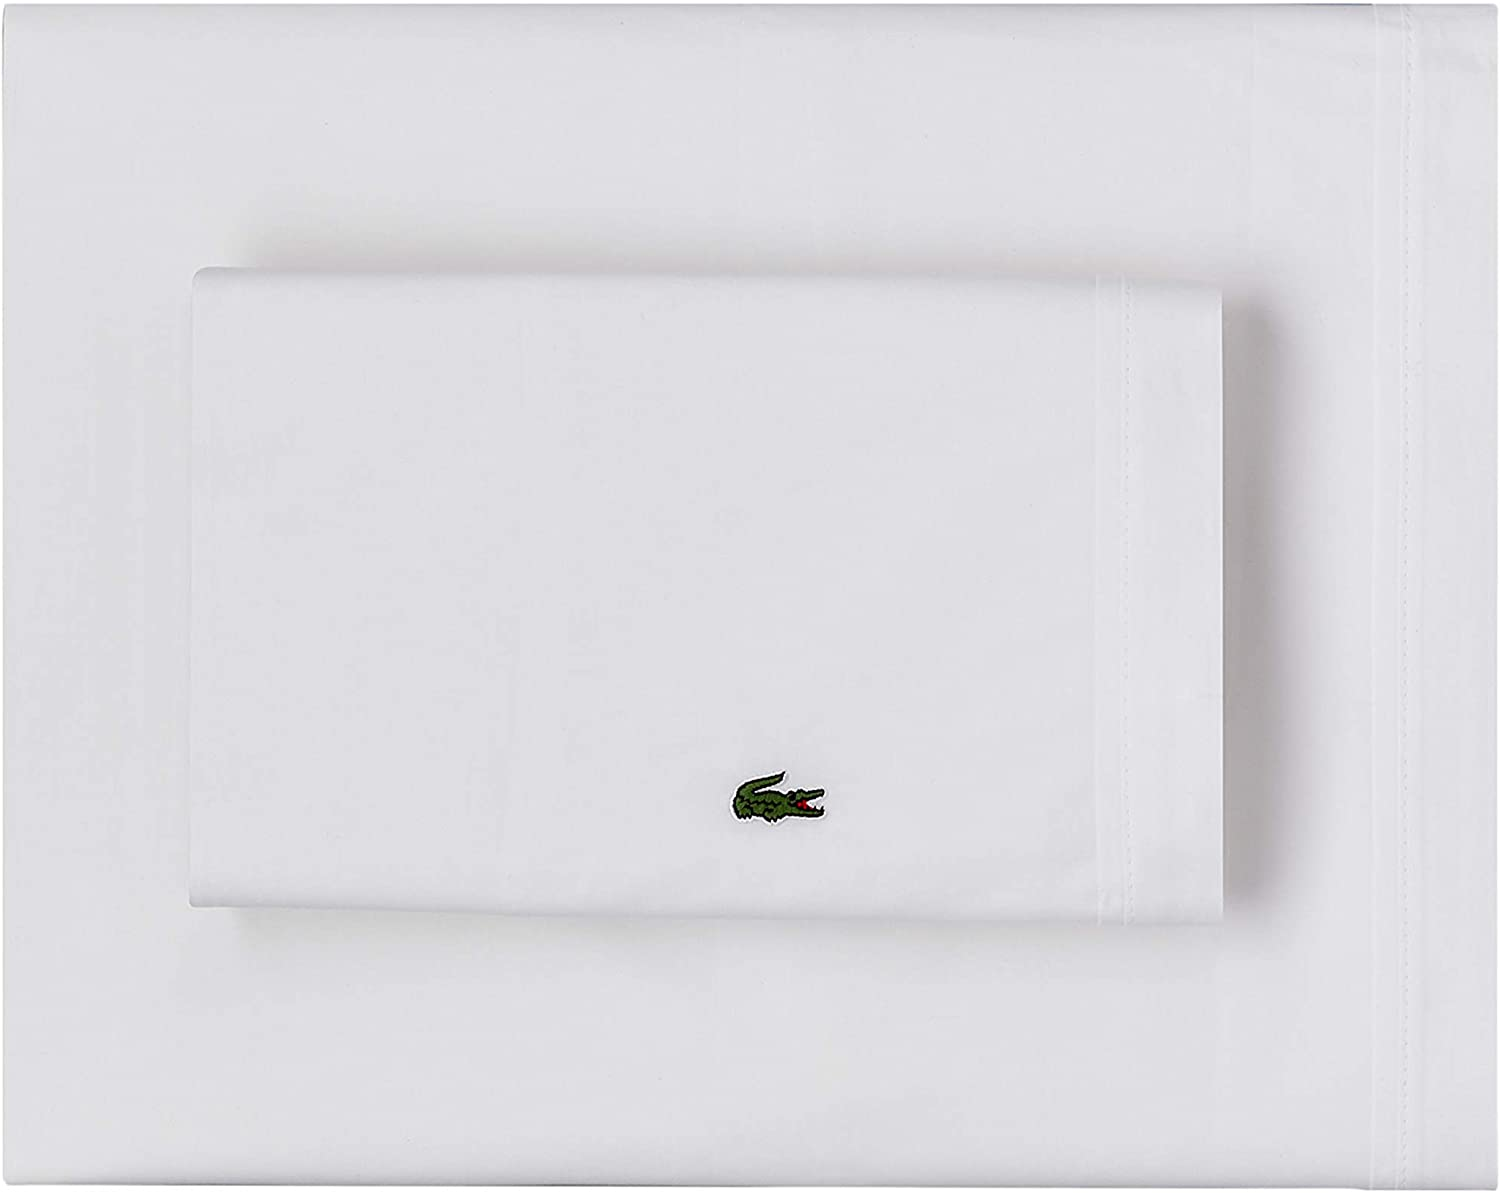 Lacoste 100% Cotton Percale Sheet Lowest price challenge specialty shop Set Twin Solid White Extra